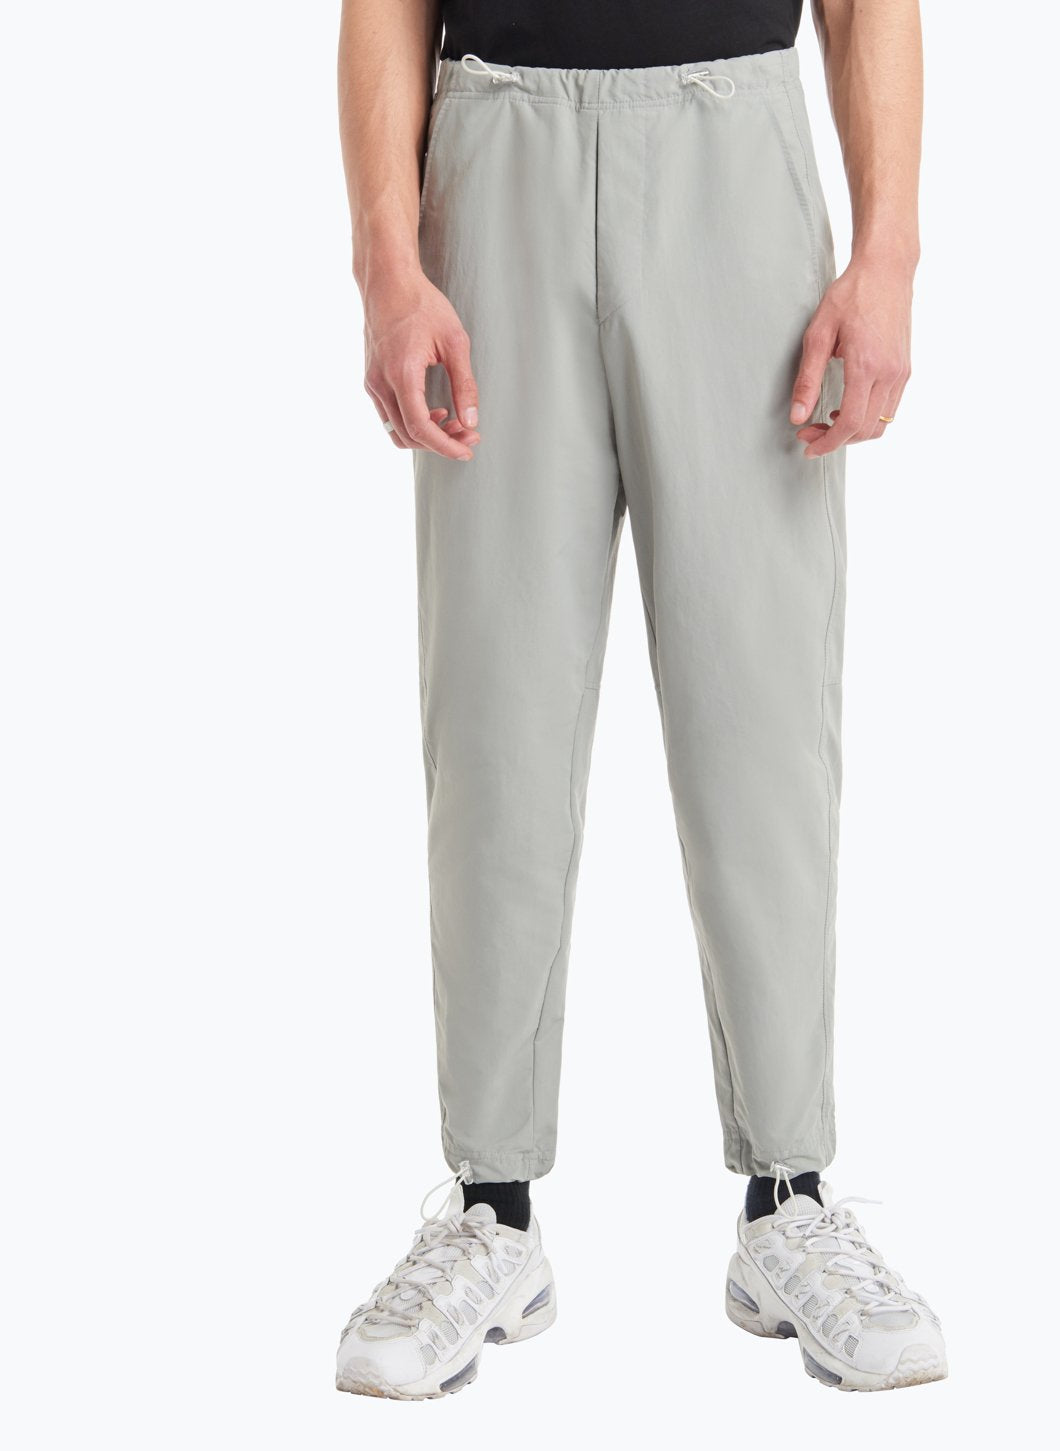 Drawstring Pants in Grey Technical Fabric